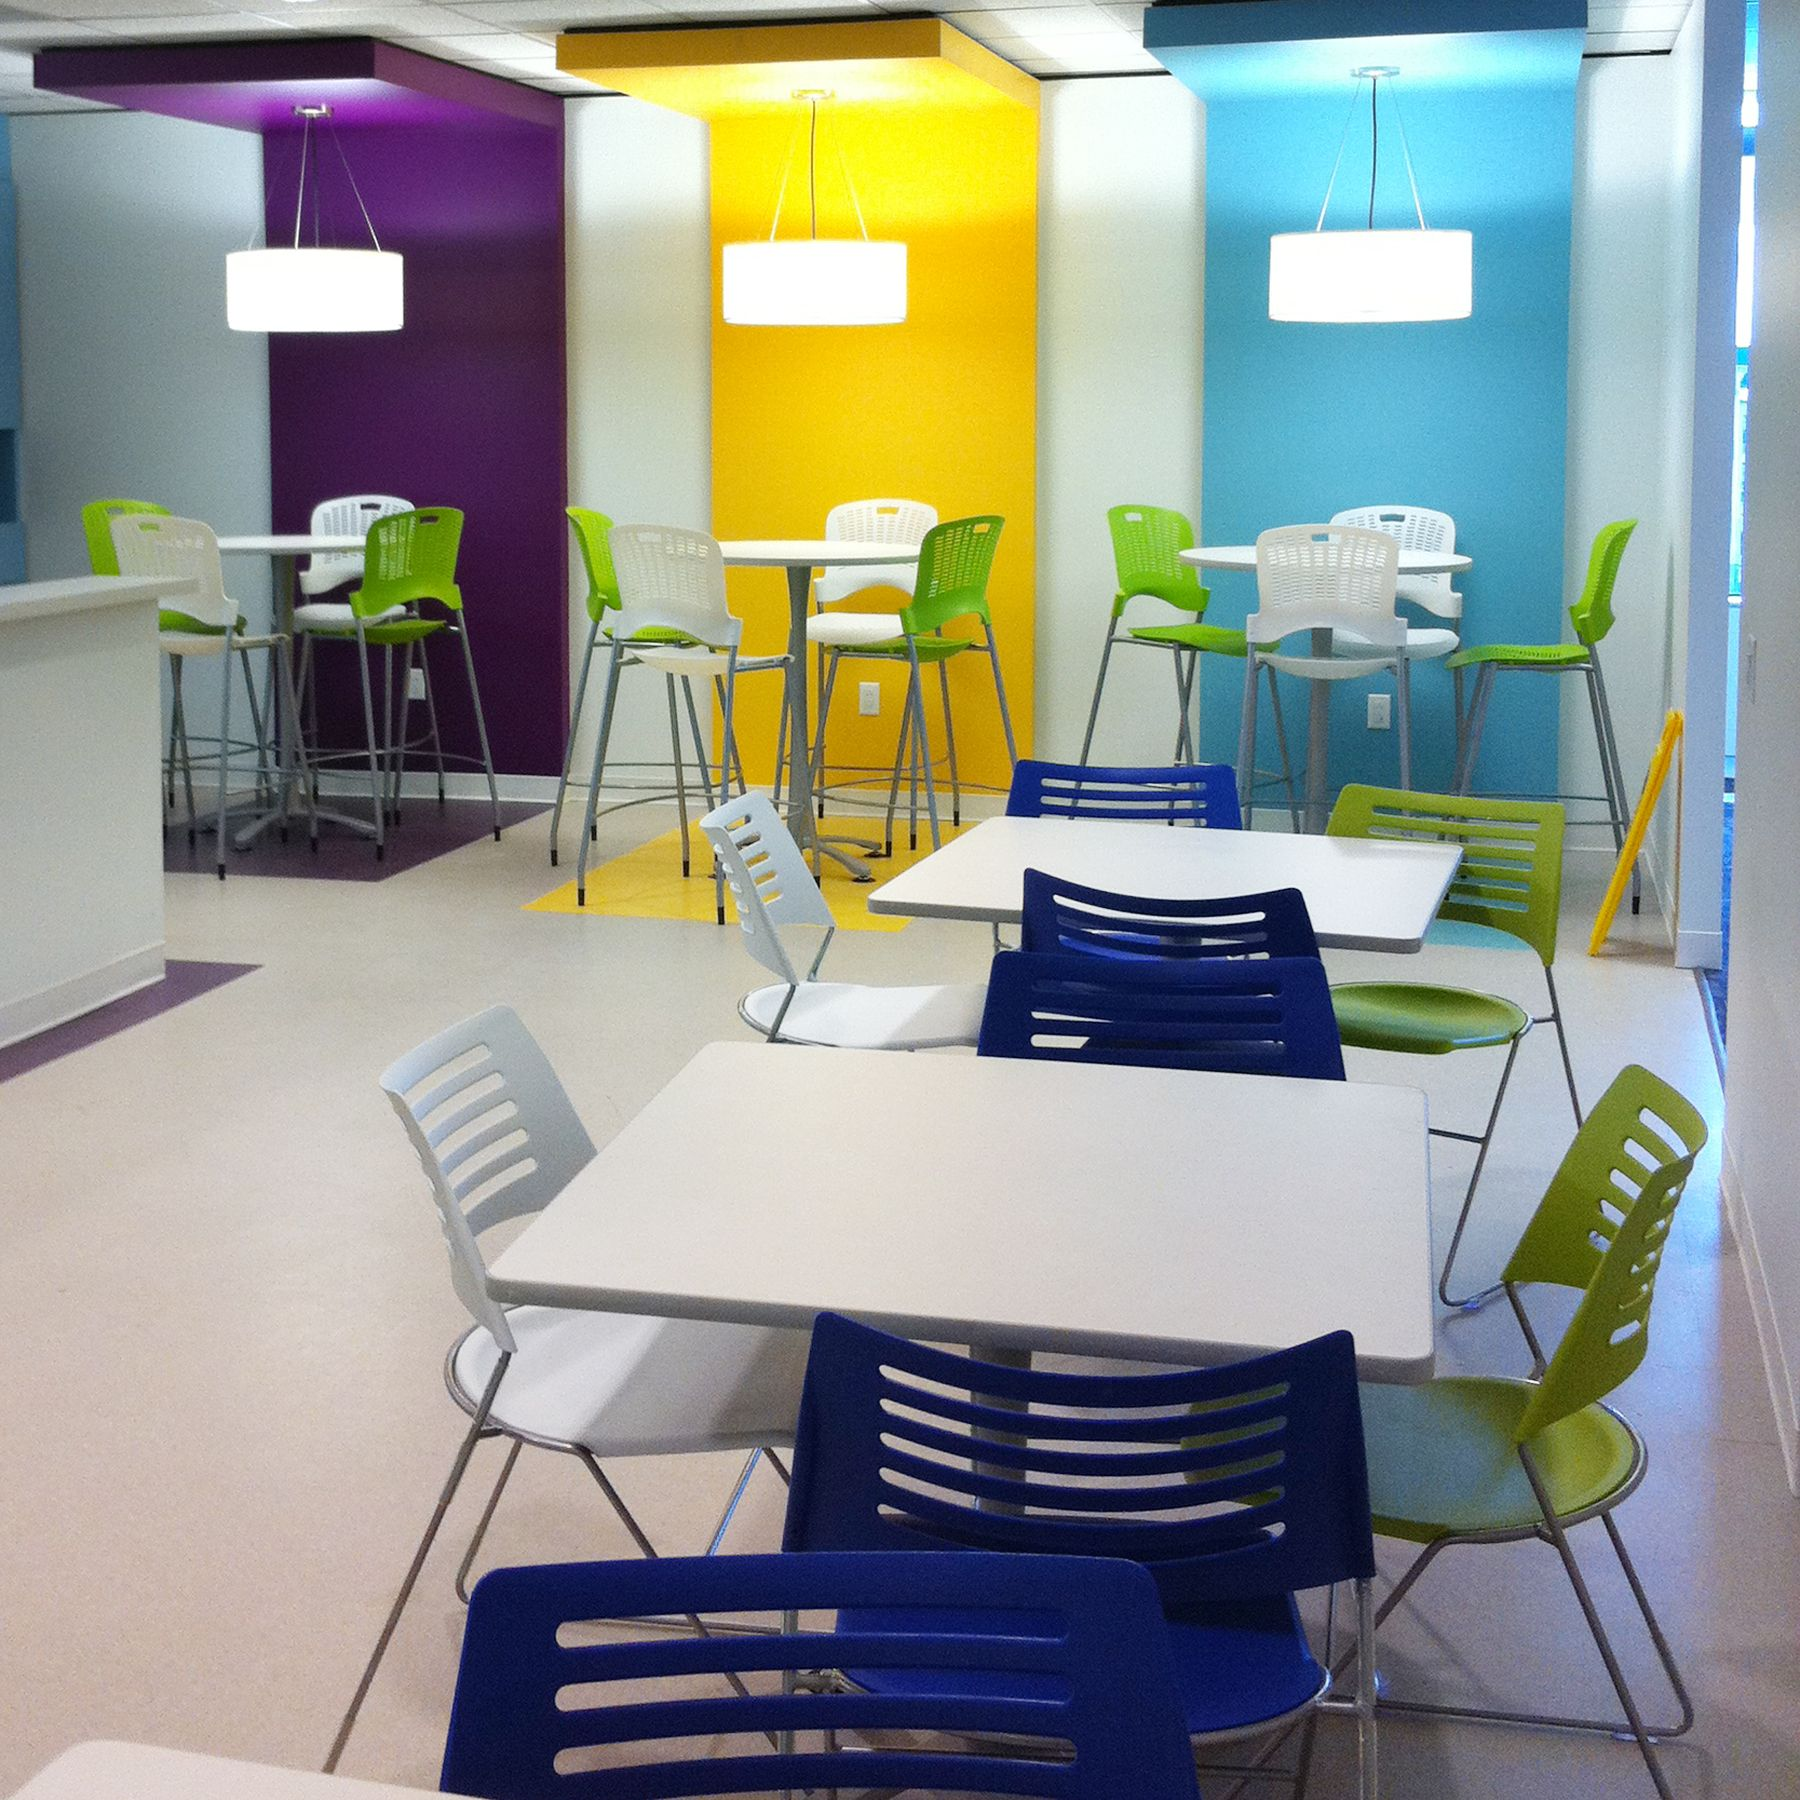 dress up that lunch room or collaborative workspace with cha-cha